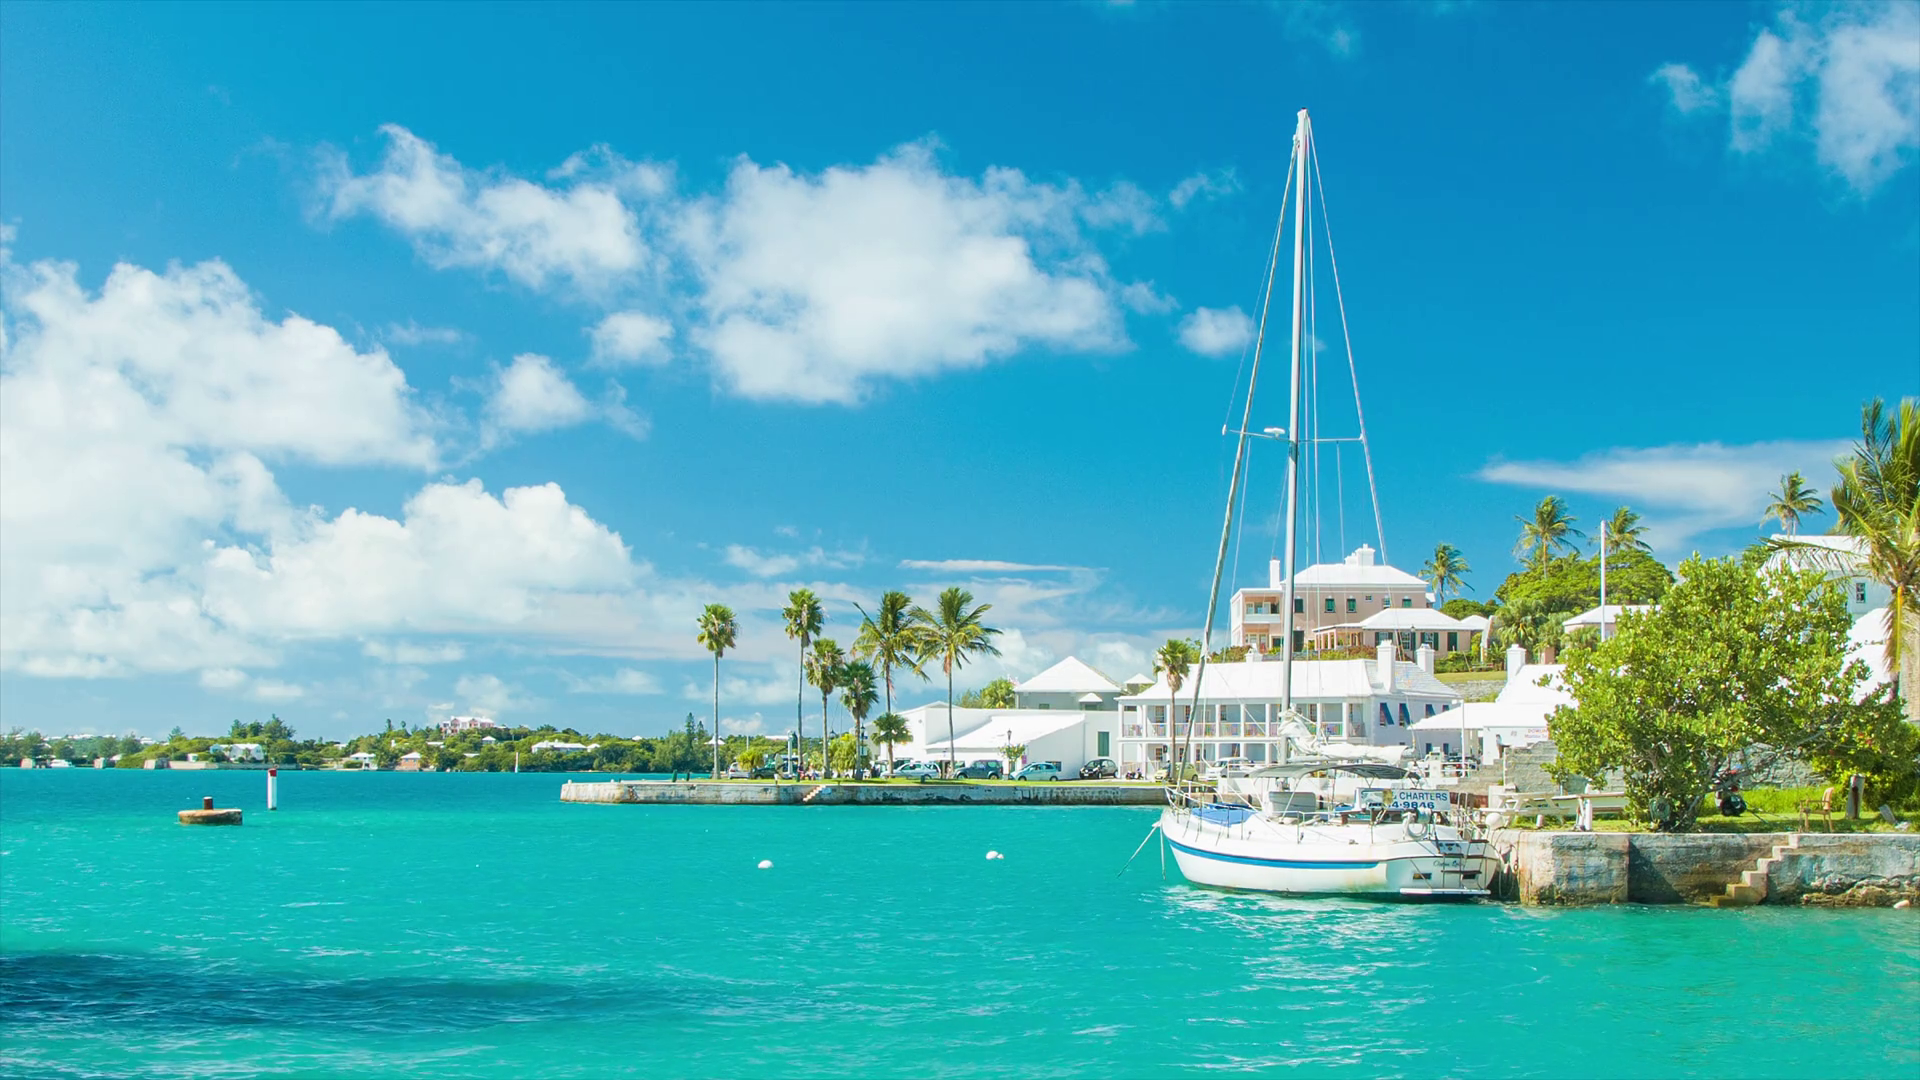 St Georges Harbor in Bermuda on a Sunny Day with a Ferry Crossing 1920x1080